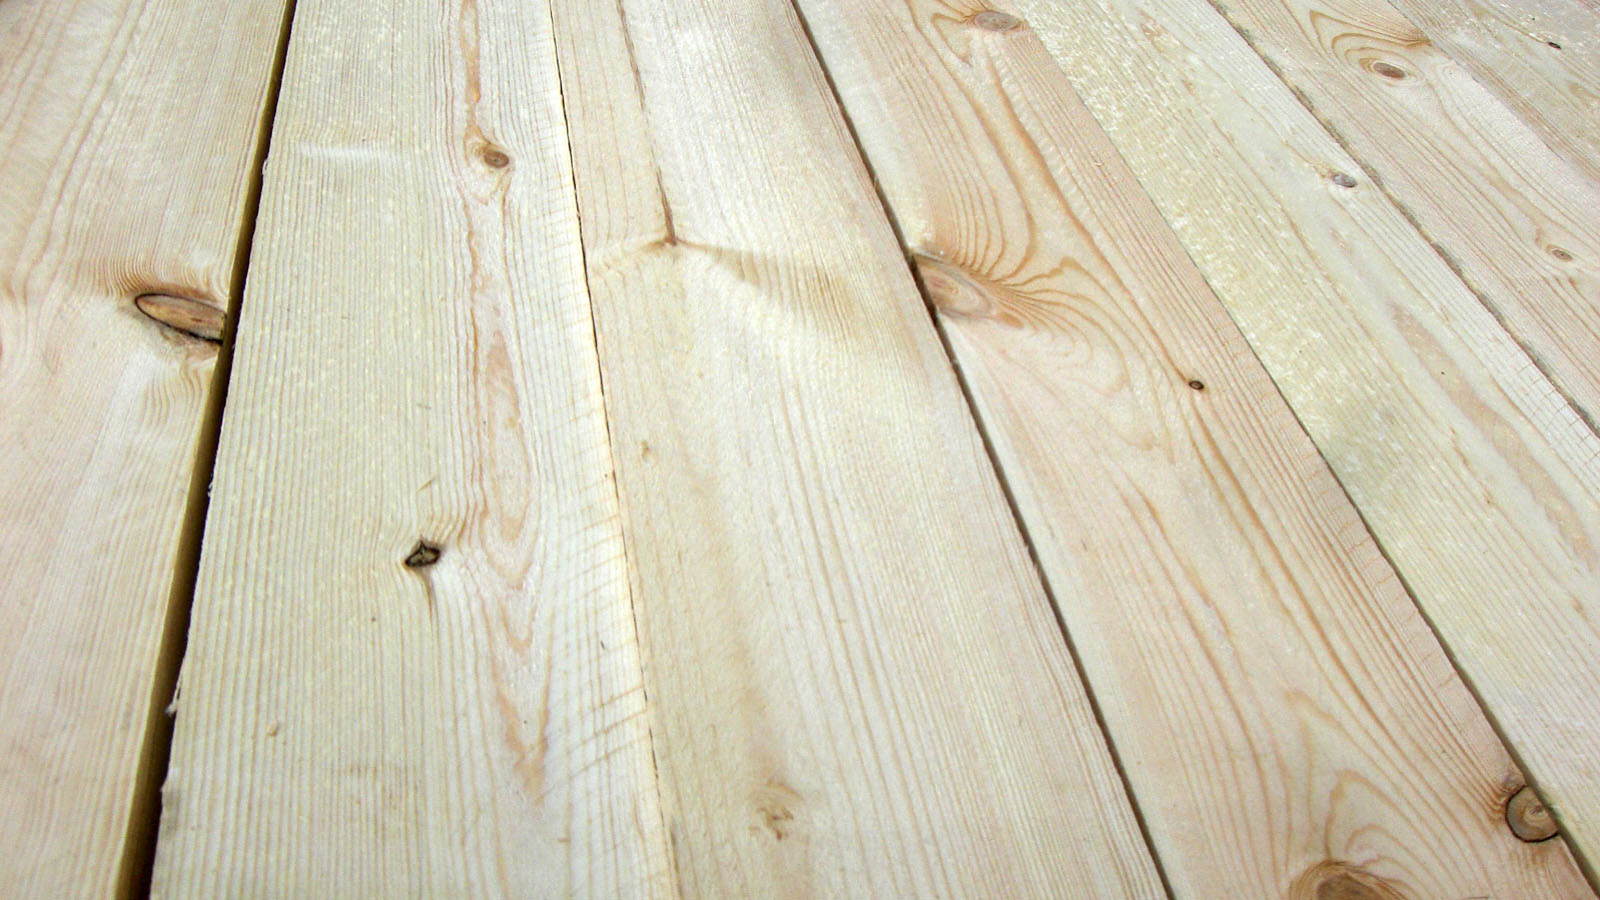 3-sawn-timber-blanks-nothern-europe-timber-production-lameko-impex